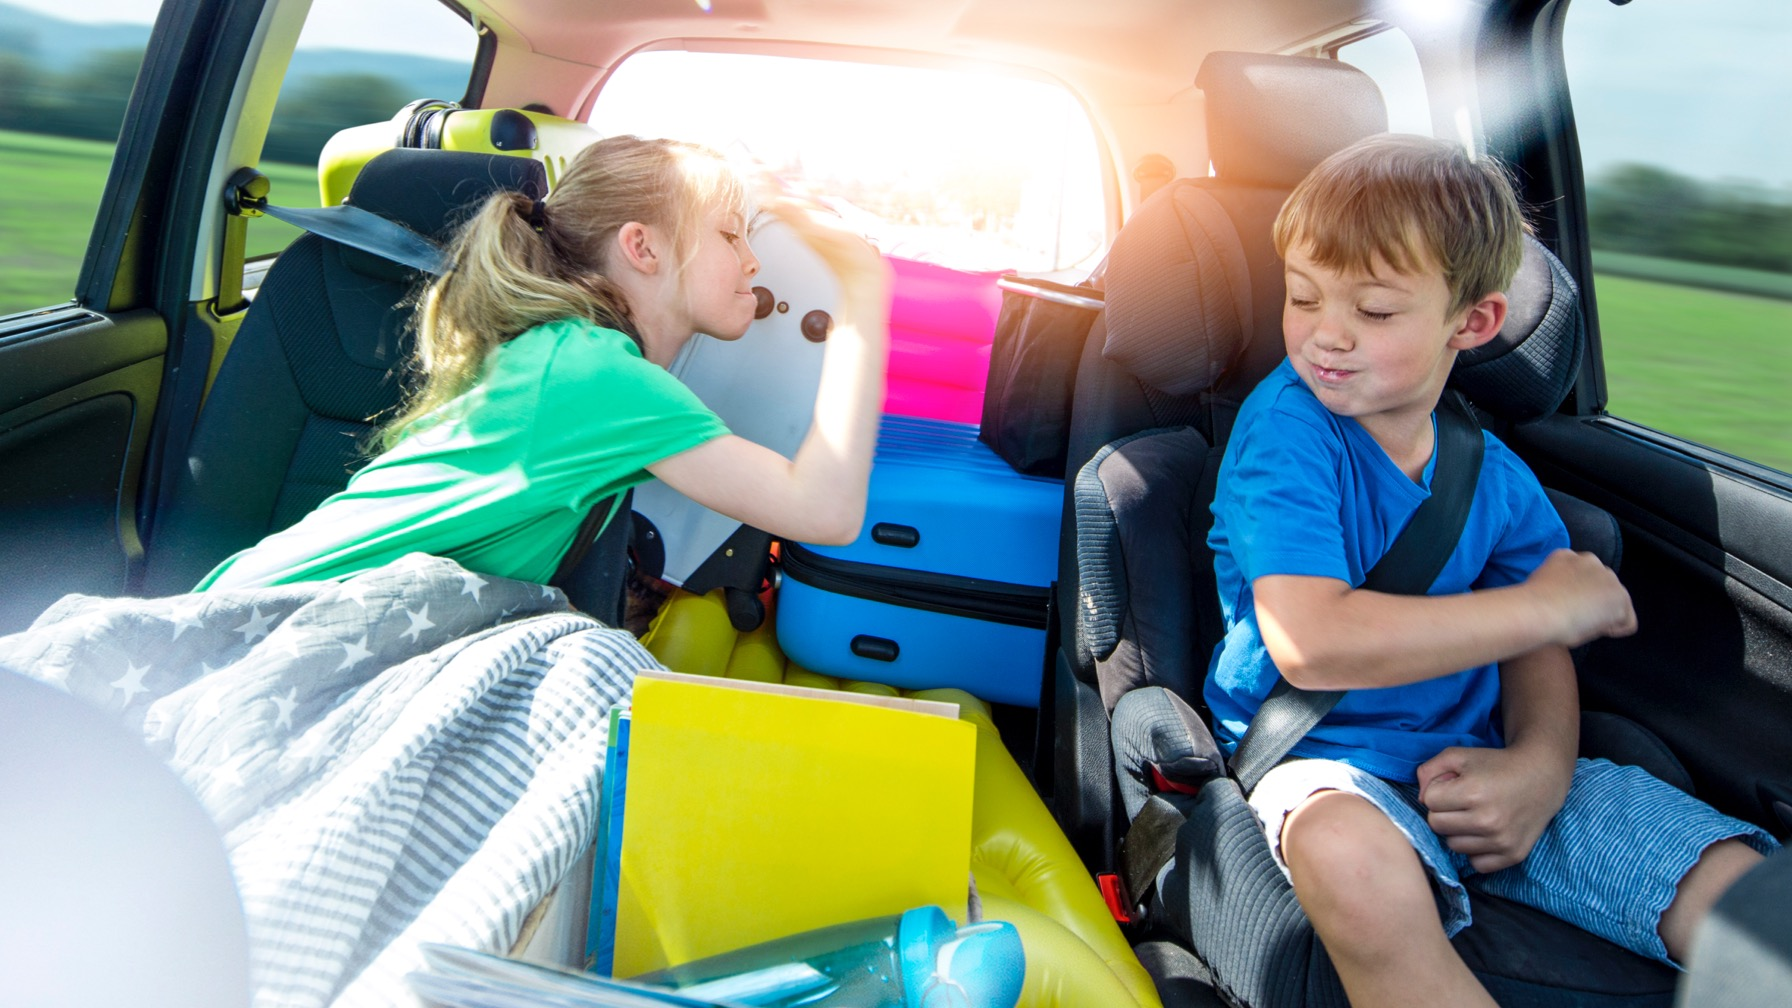 Dad Puts an End to Backseat Brawls With Genius New Product [VIDEO]